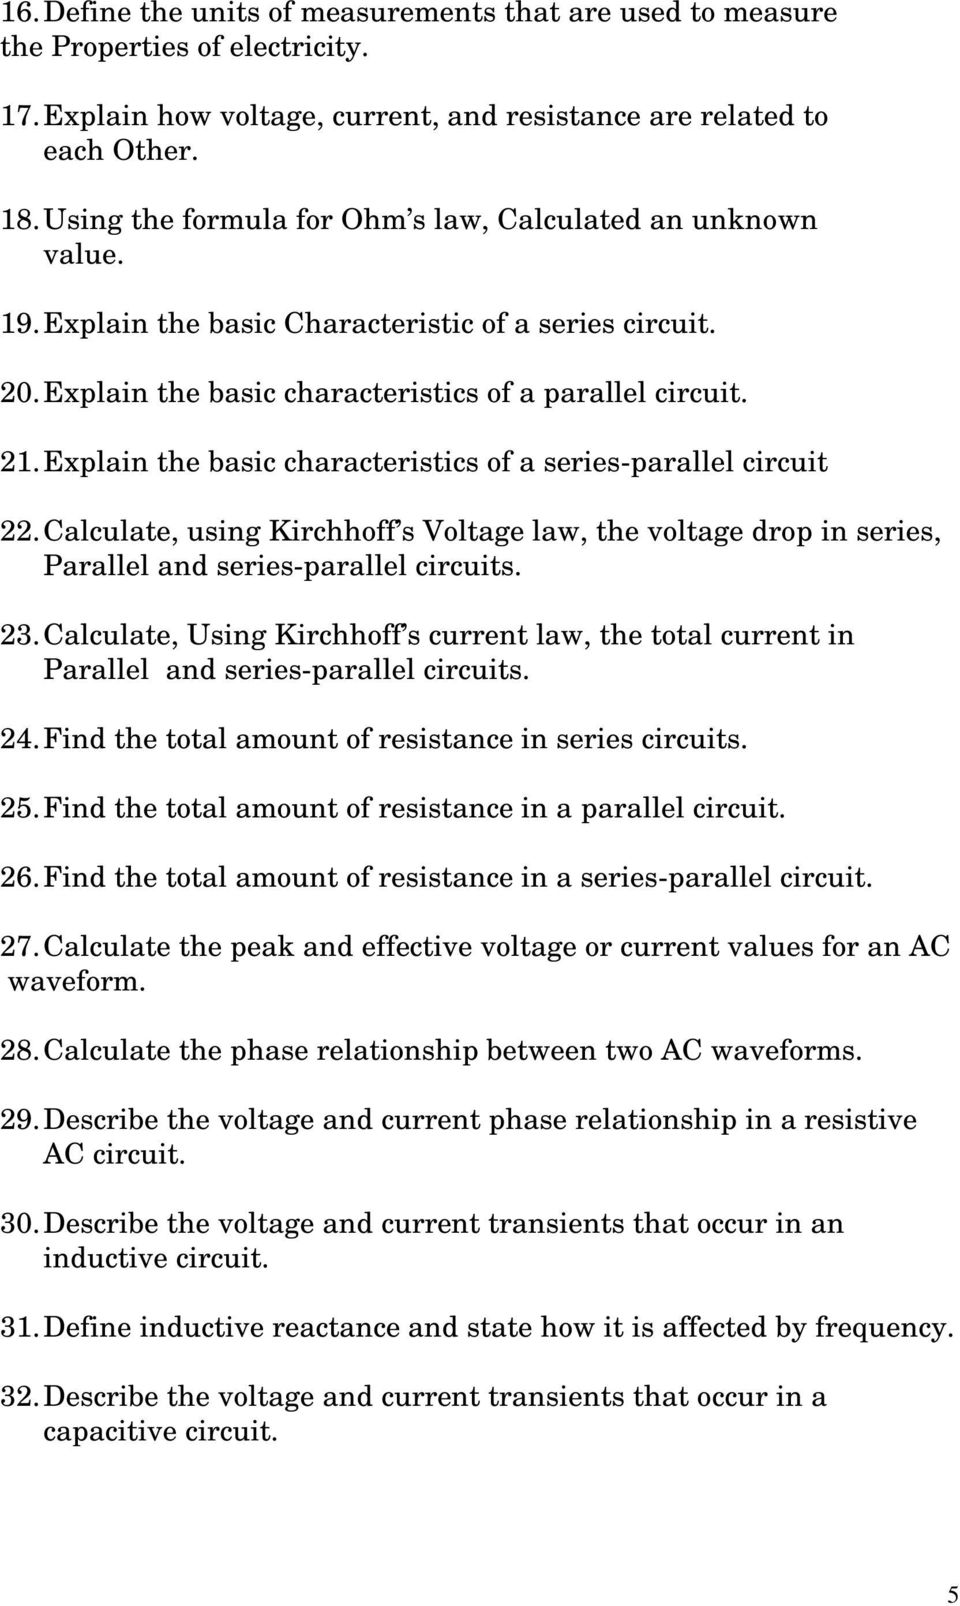 Elpt 1419 Fundamentals Of Electricity I Pdf Figure 21 Voltage Total In A Series Circuit Explain The Basic Characteristics Parallel 22 Calculate Using Kirchhoff